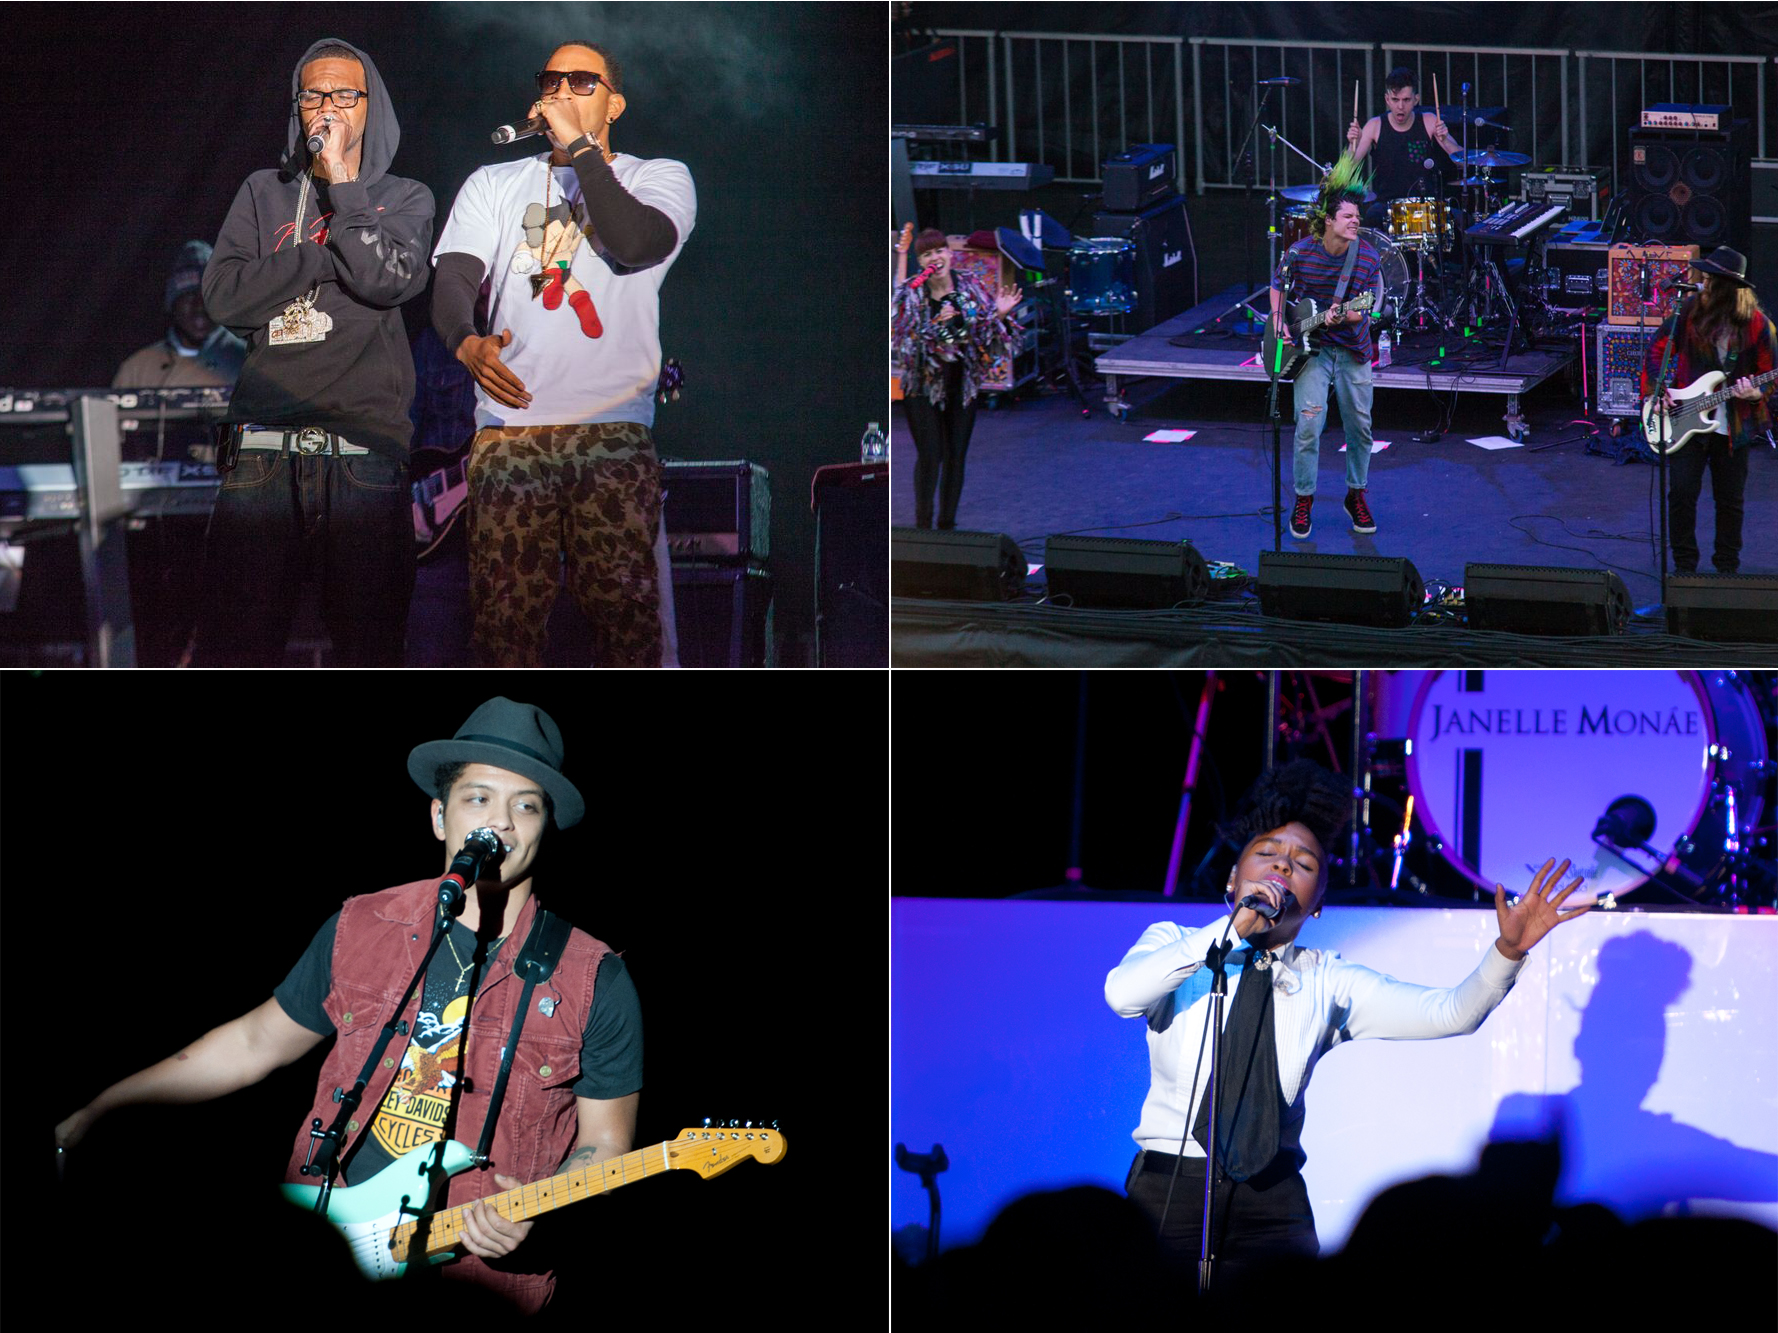 Top: Ludacris and Grouplove perform at Brookfest 2013. Bottom: Bruno Mars and Janelle Monae take the stage in 2011. (STATESMAN STOCK PHOTO)